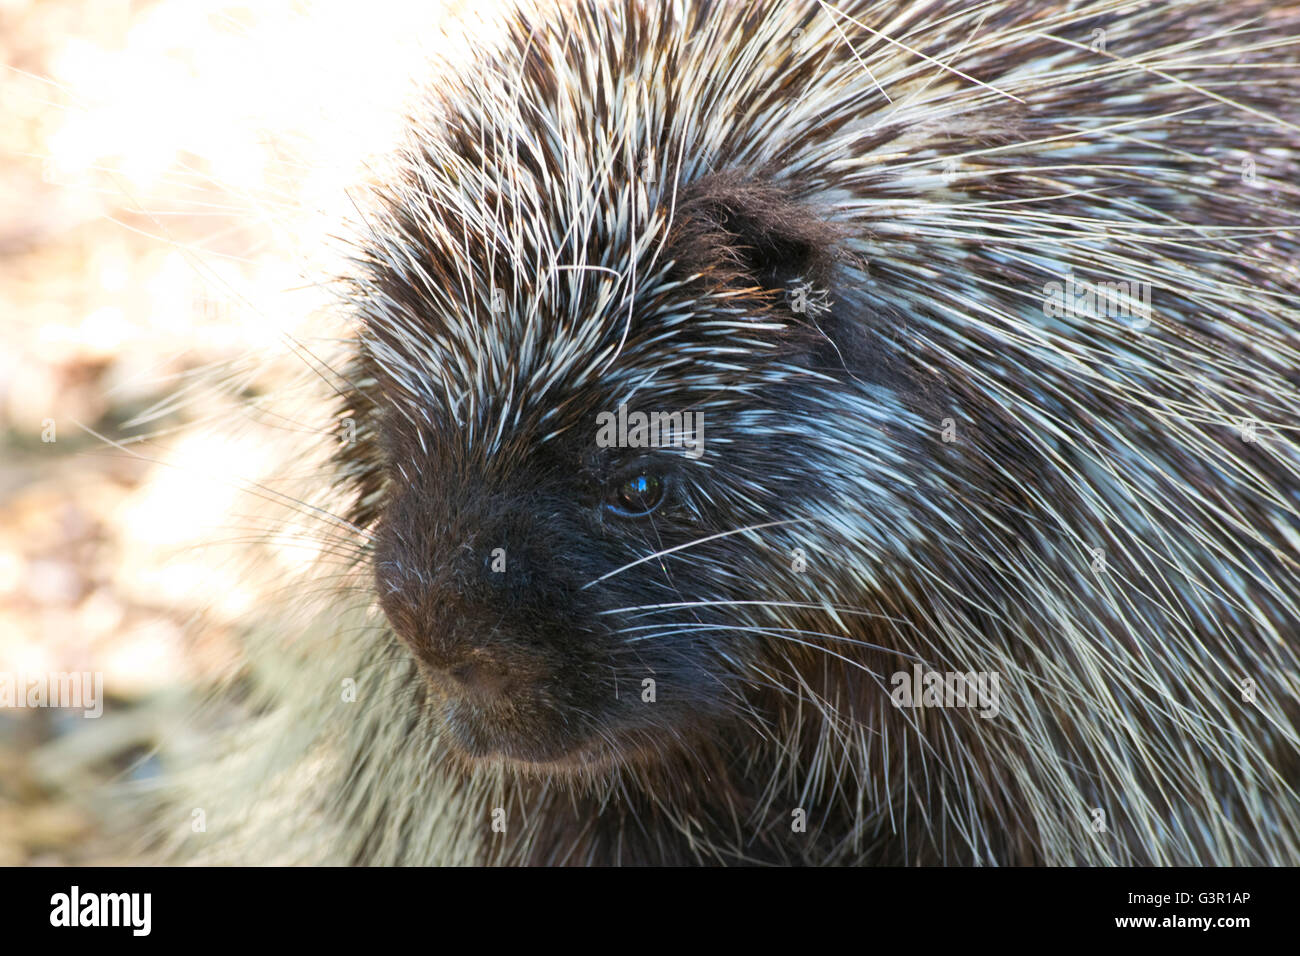 Close-up of a Common Porcupine. Stock Photo